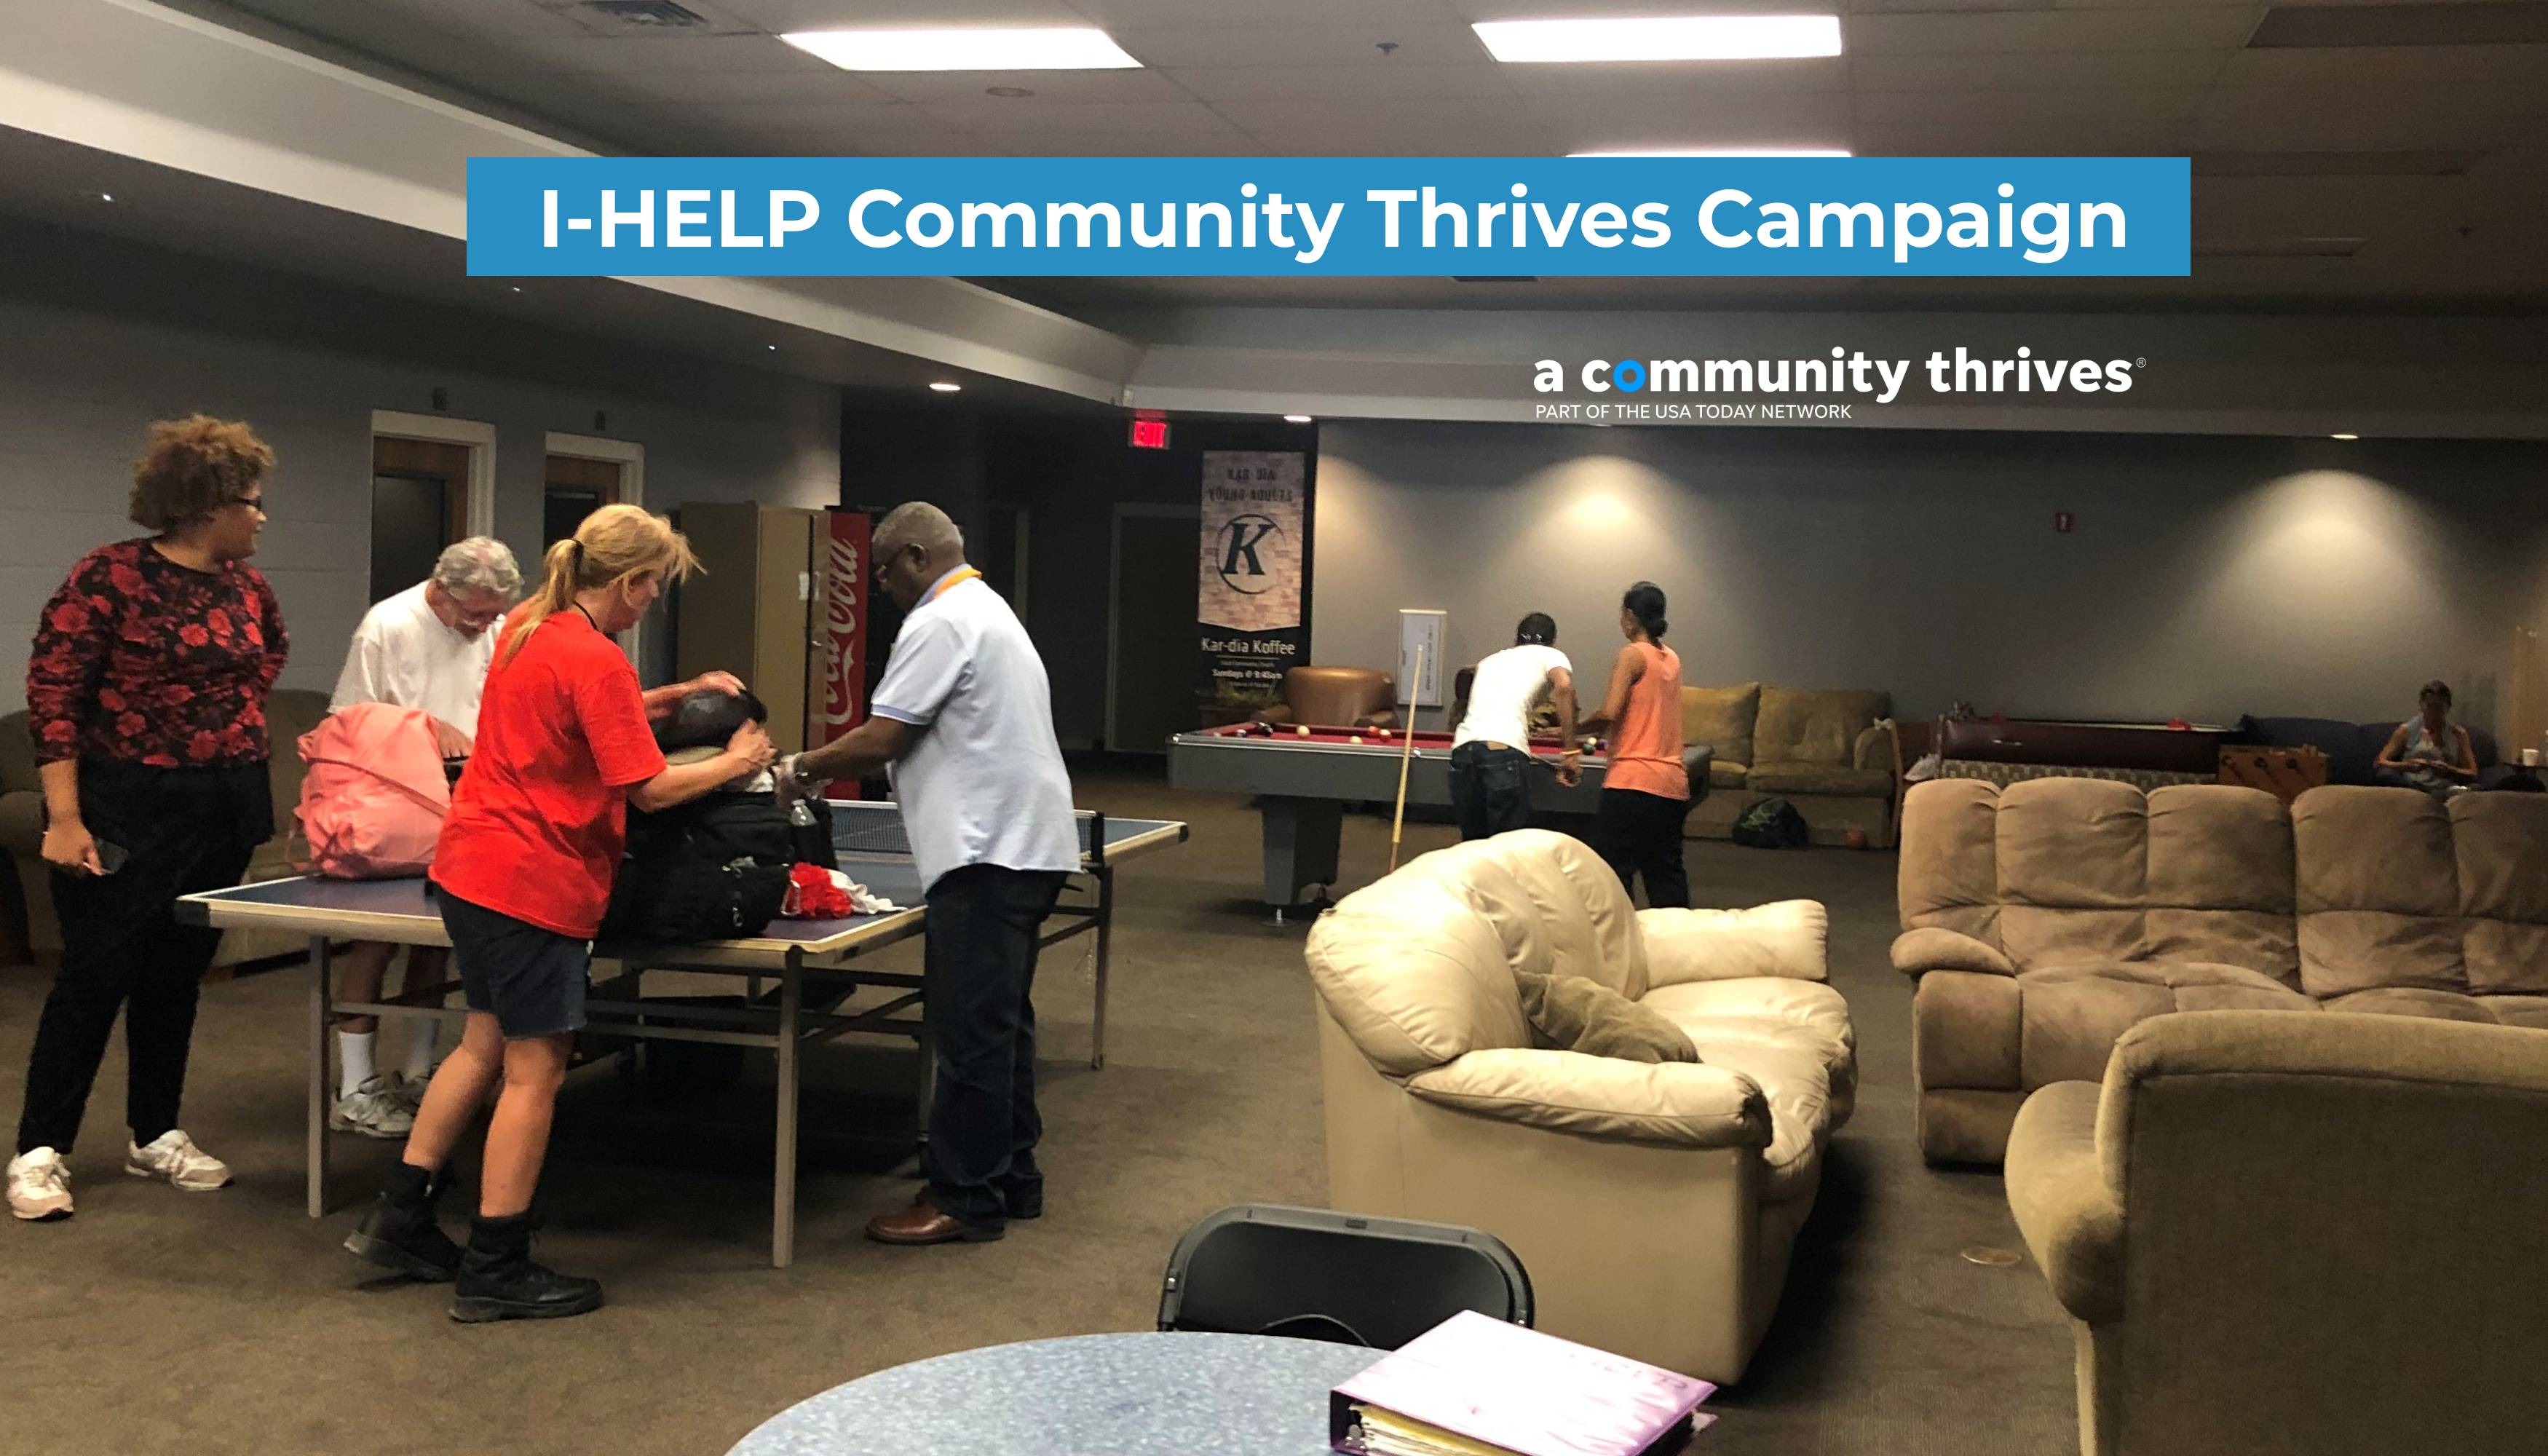 I-HELP Community Thrives Campaign